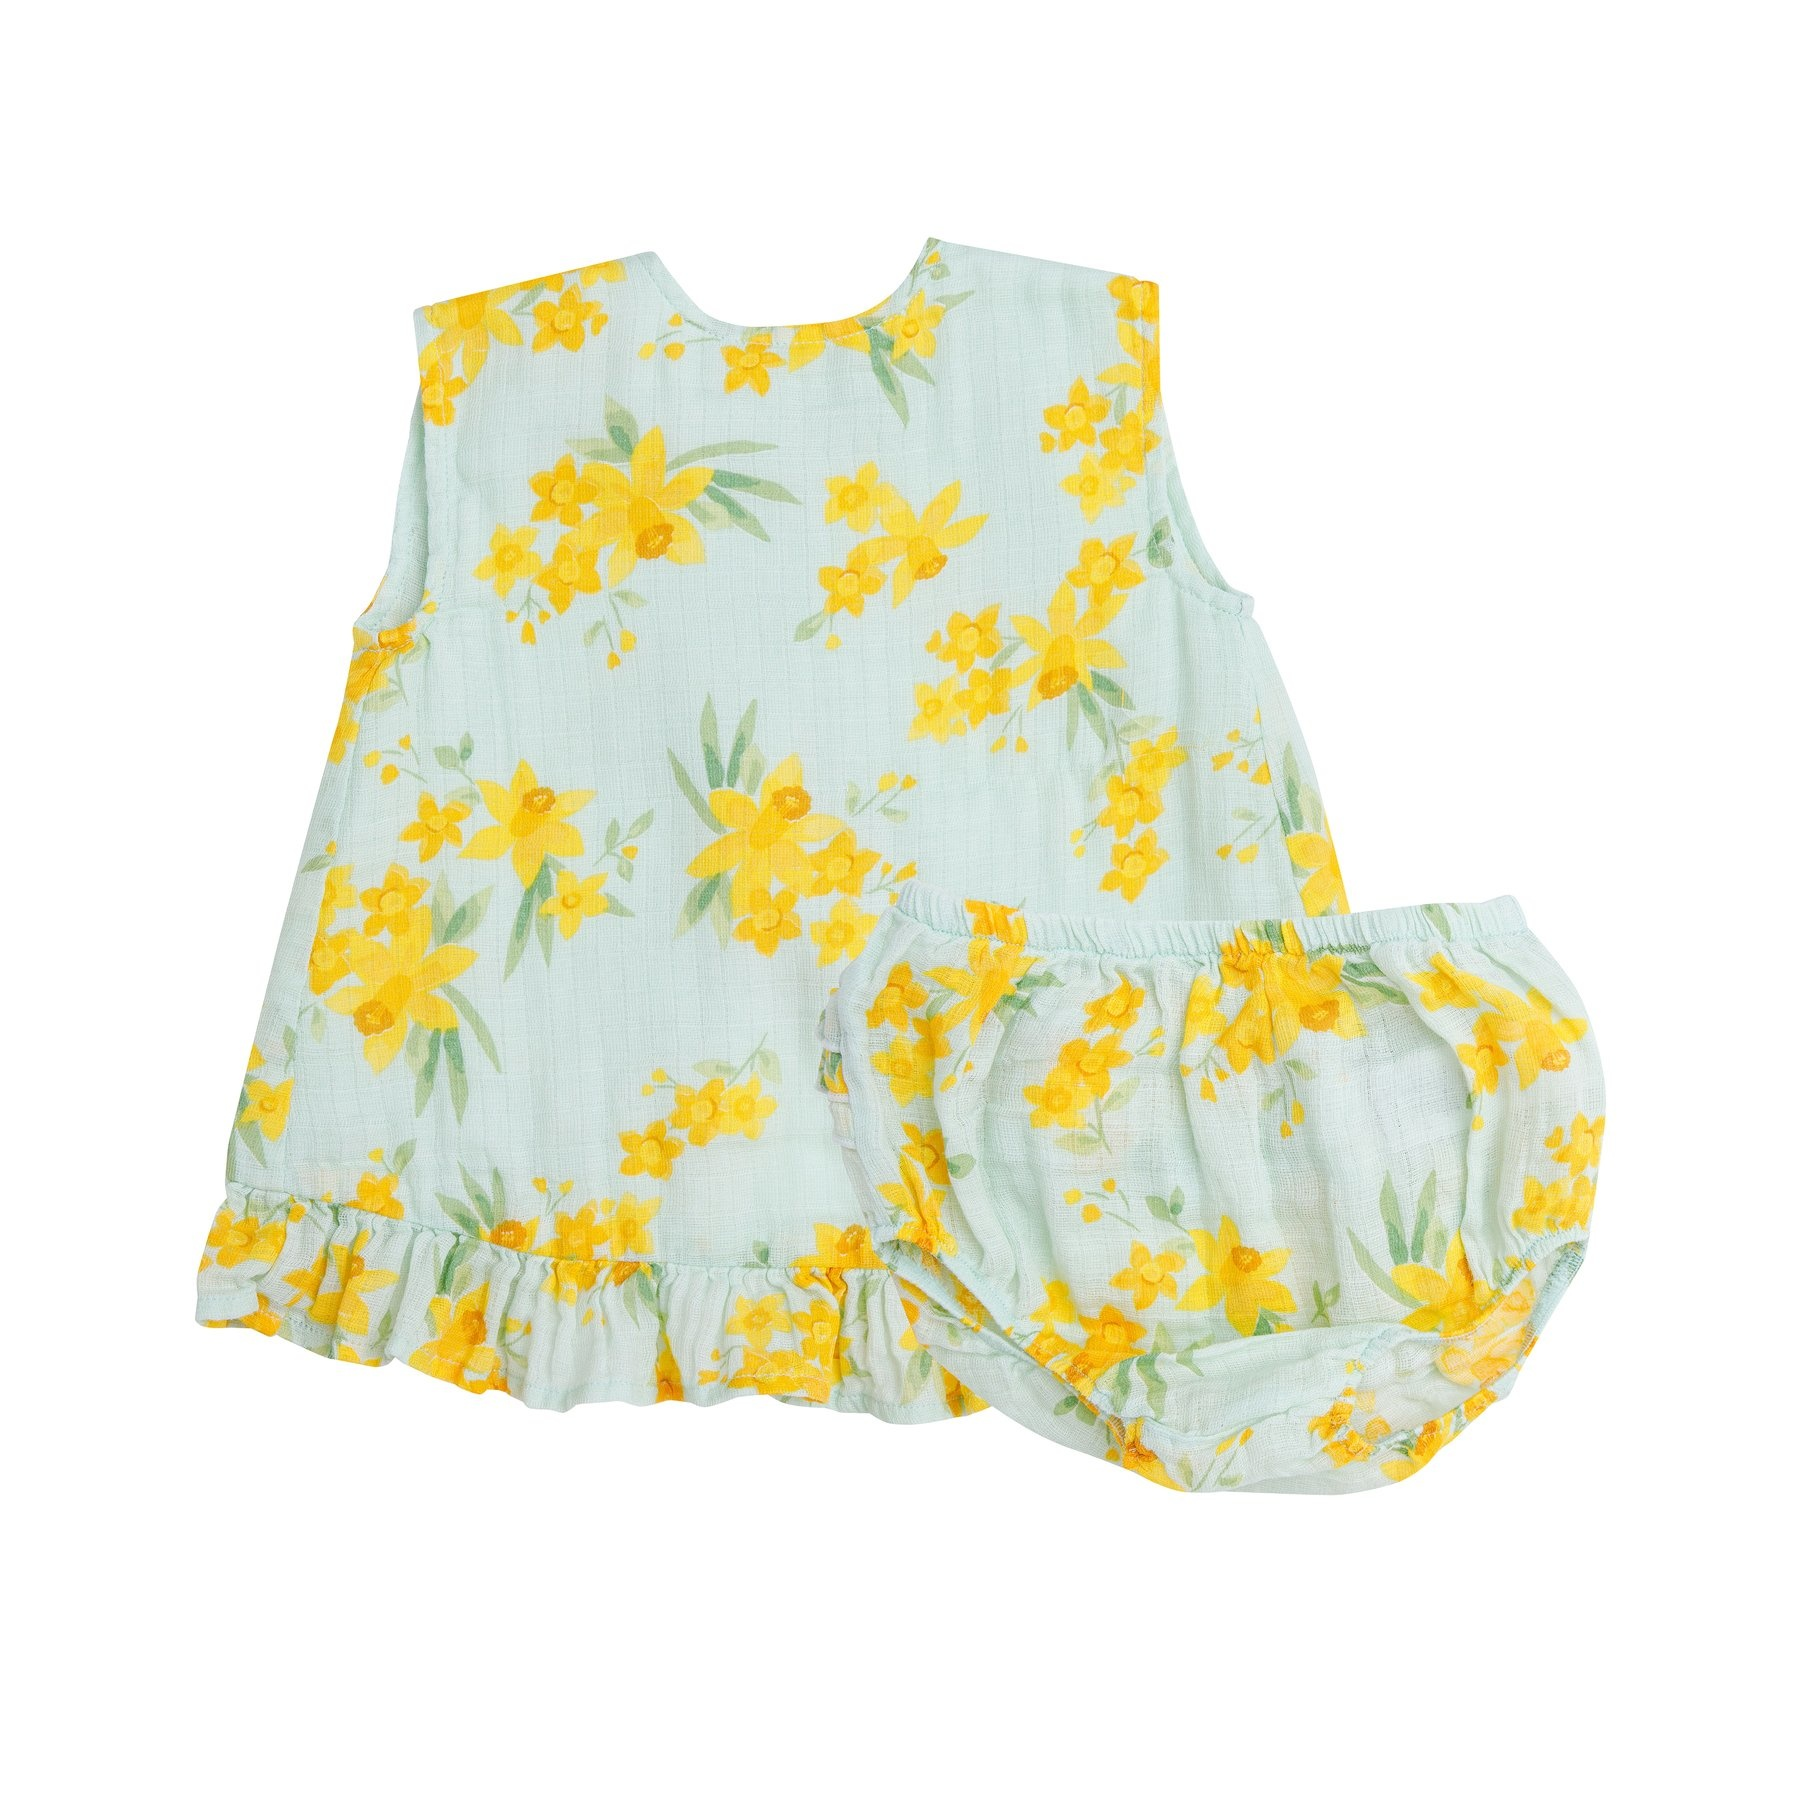 Angel Dear Daffodils Ruffle Top/Bloomer